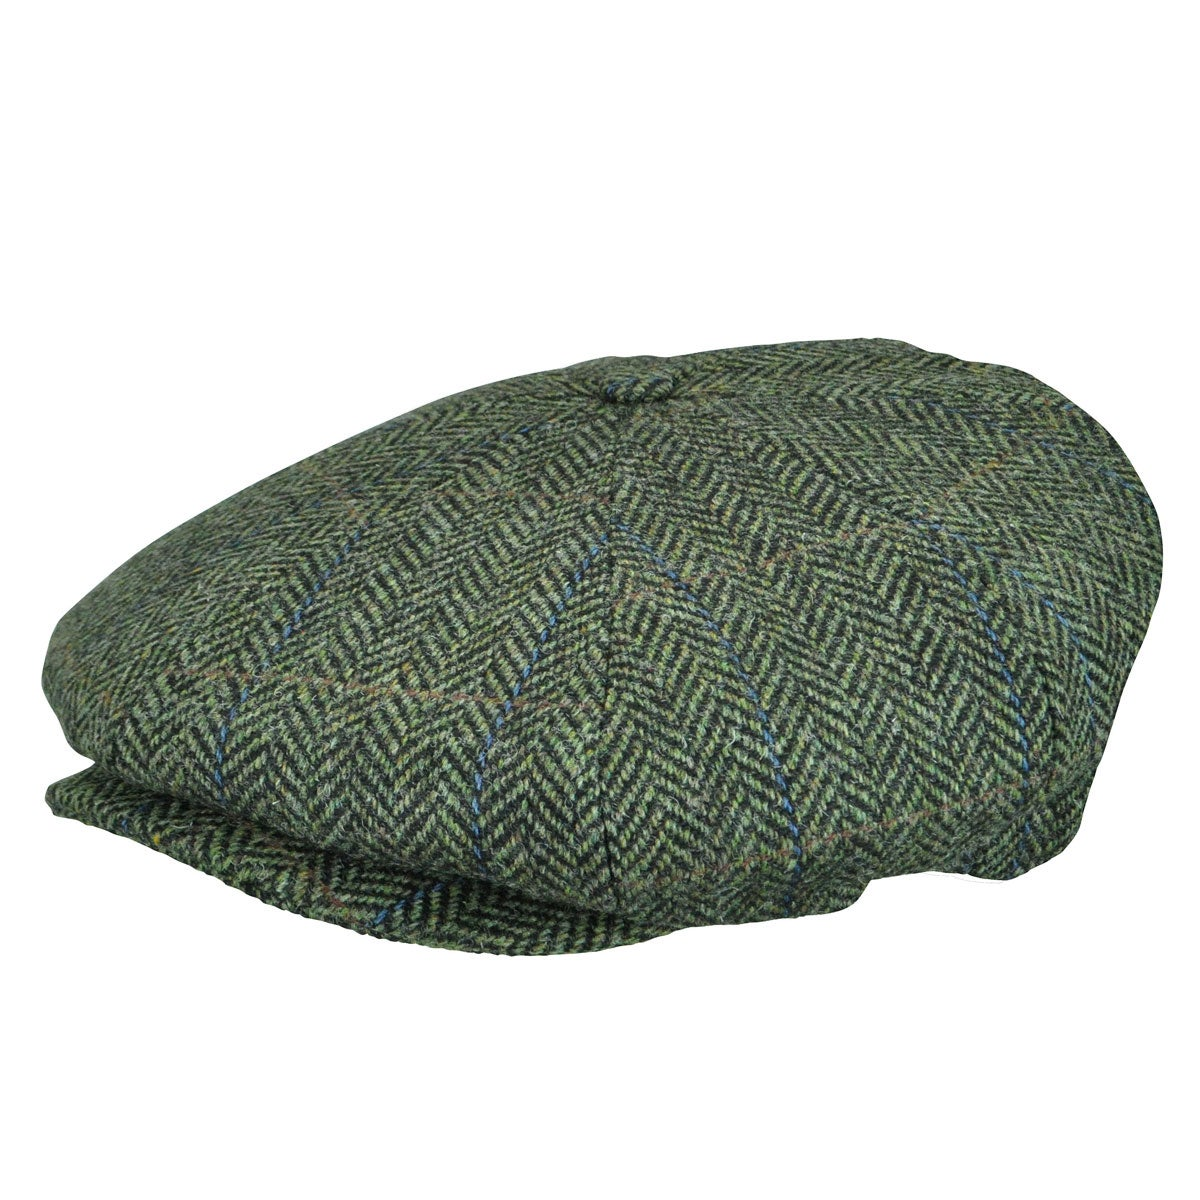 New Edwardian Style Men's Hats 1900-1920 Tweed Ripley $98.00 AT vintagedancer.com